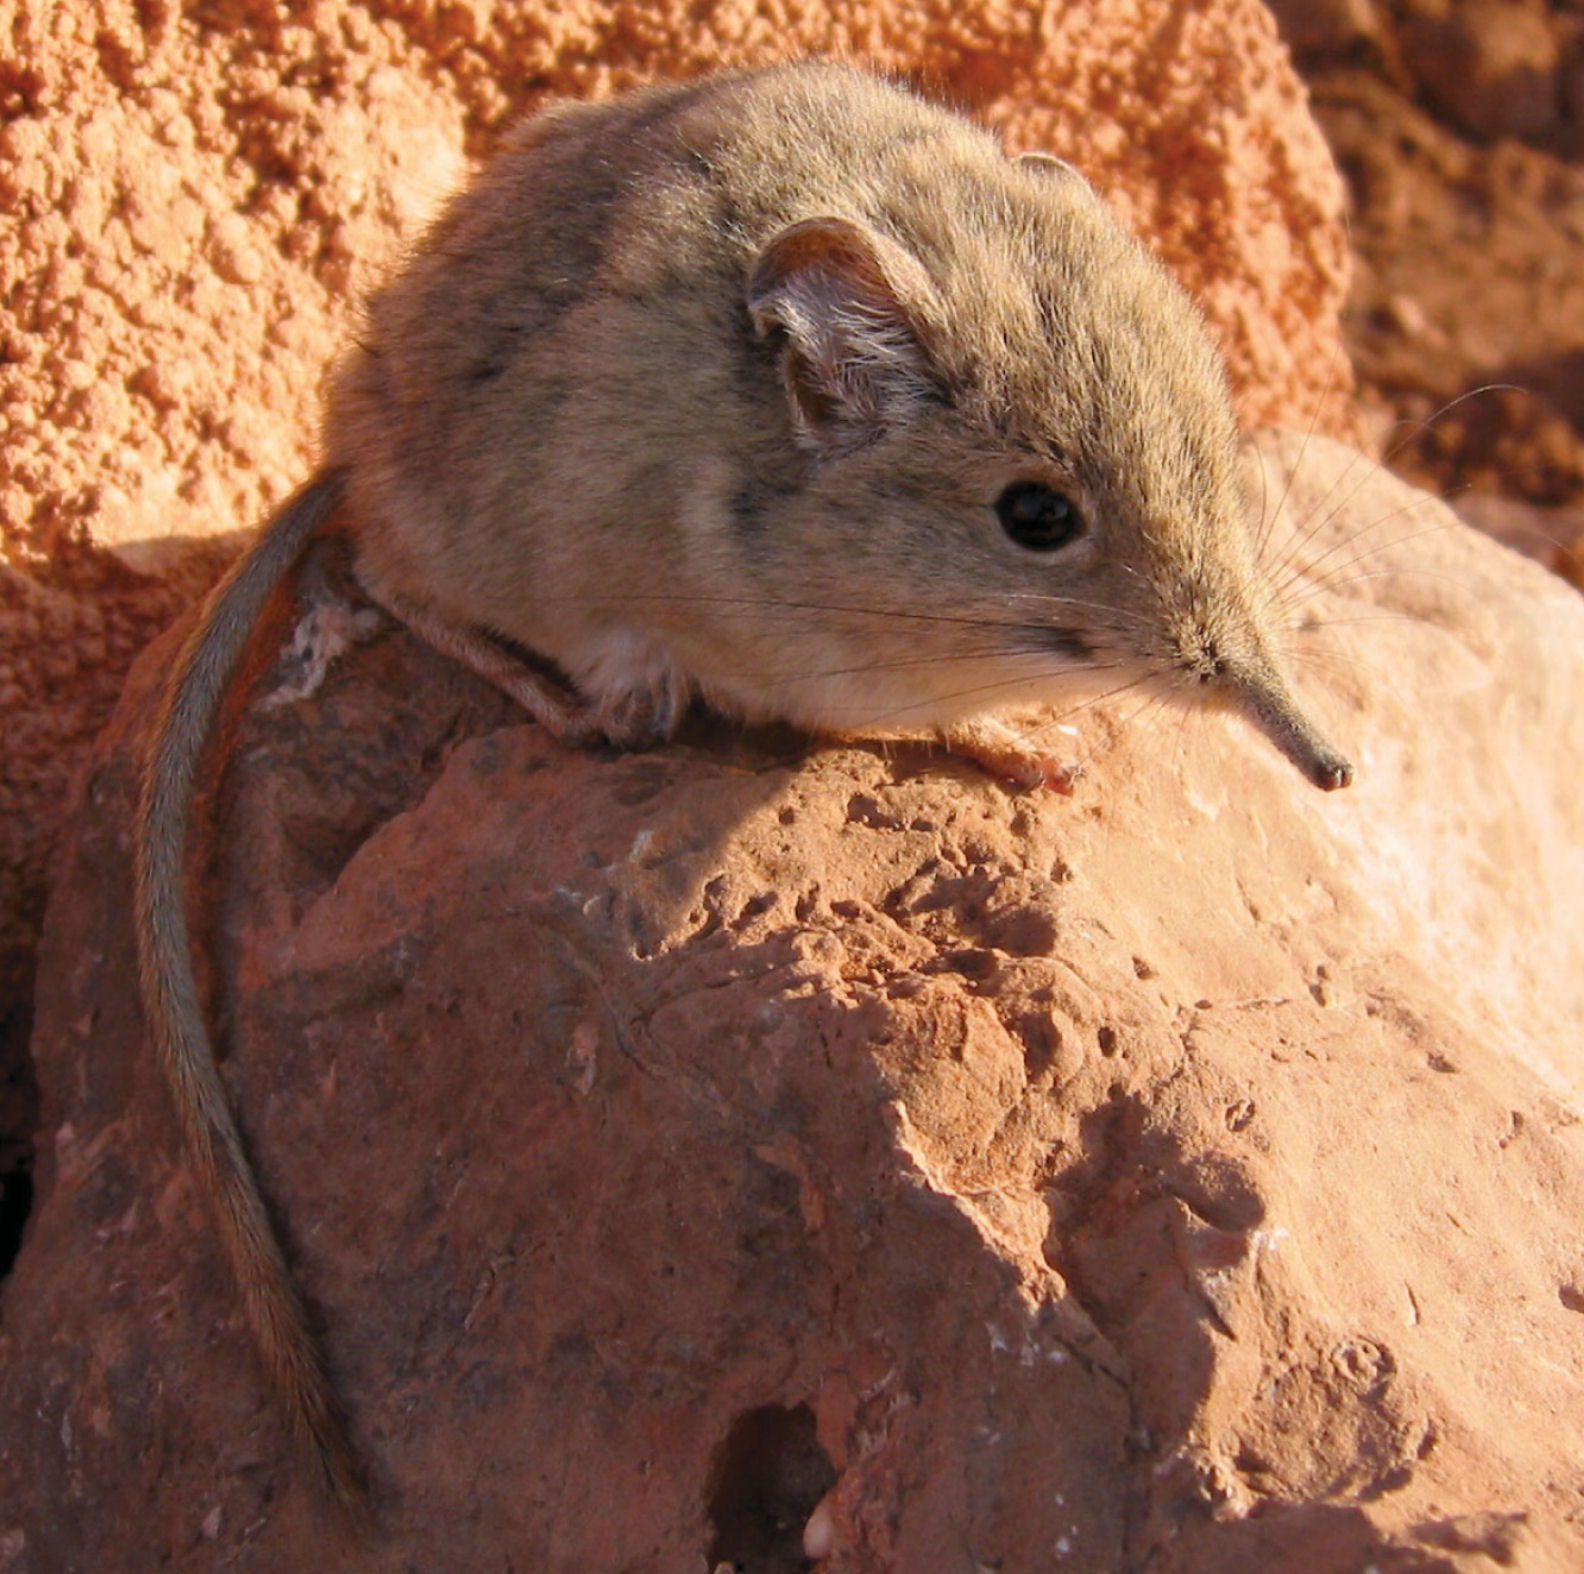 Elephant shrew rediscovered after lost to science for 50 years